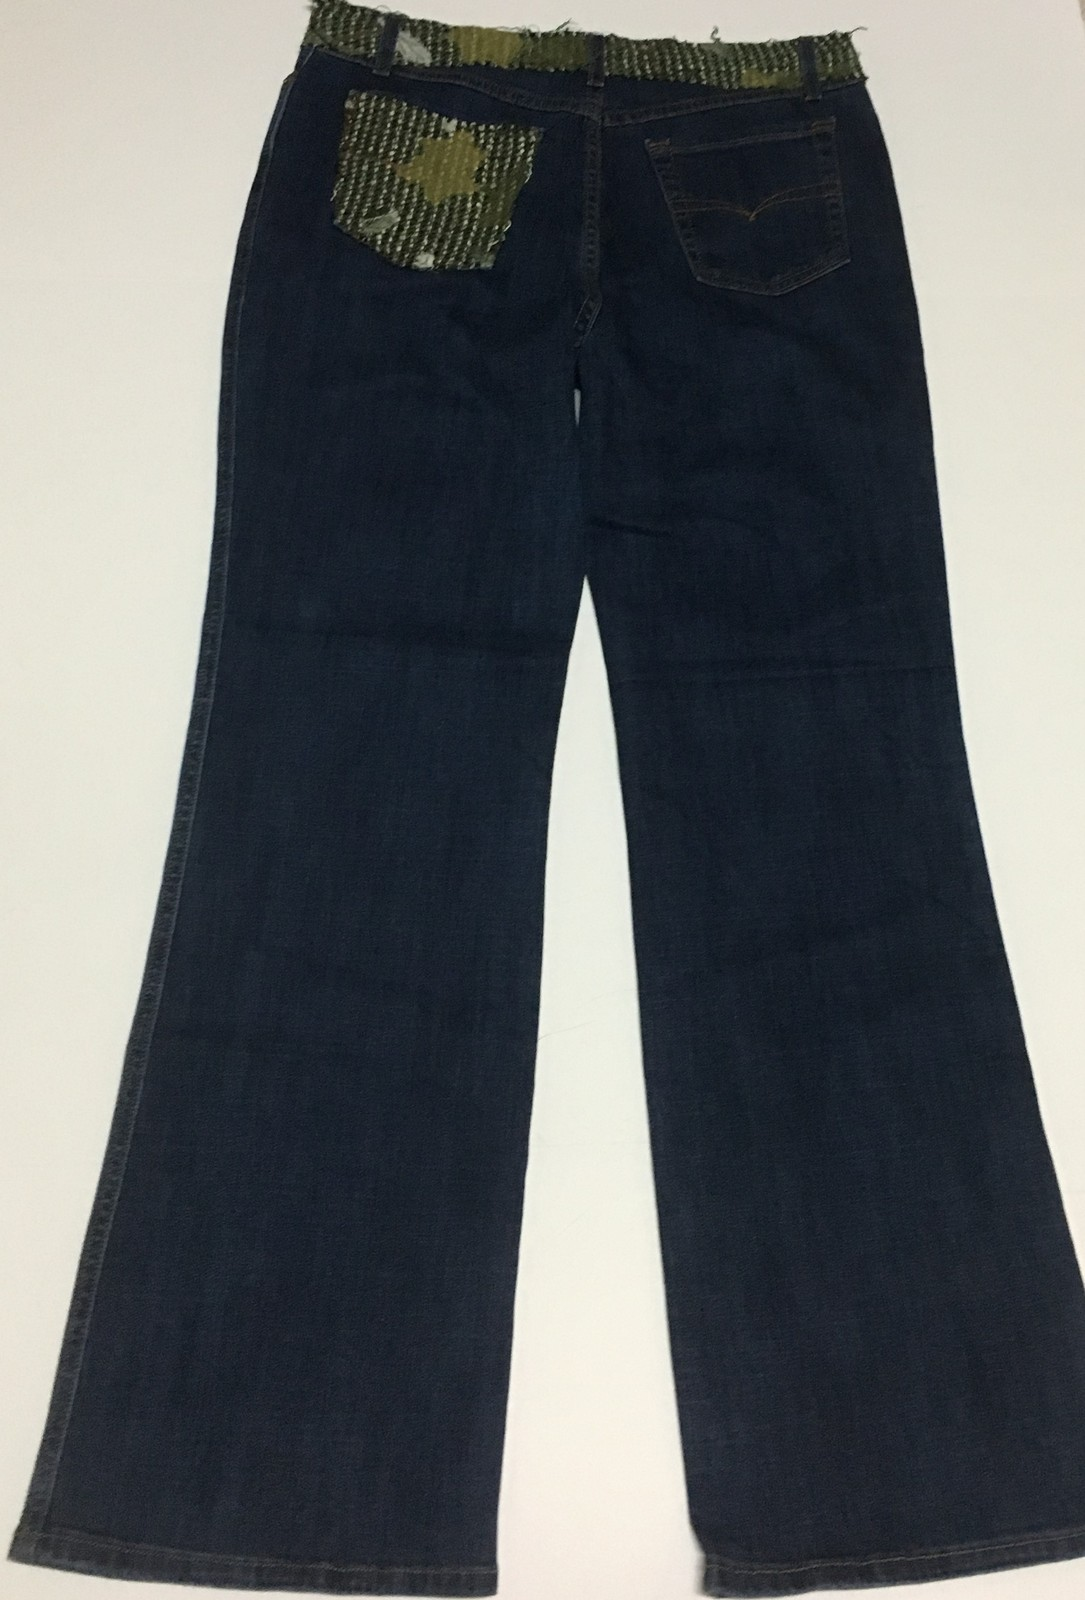 Boho Chic Women's Jeans Sz 12 Flare Made in USA